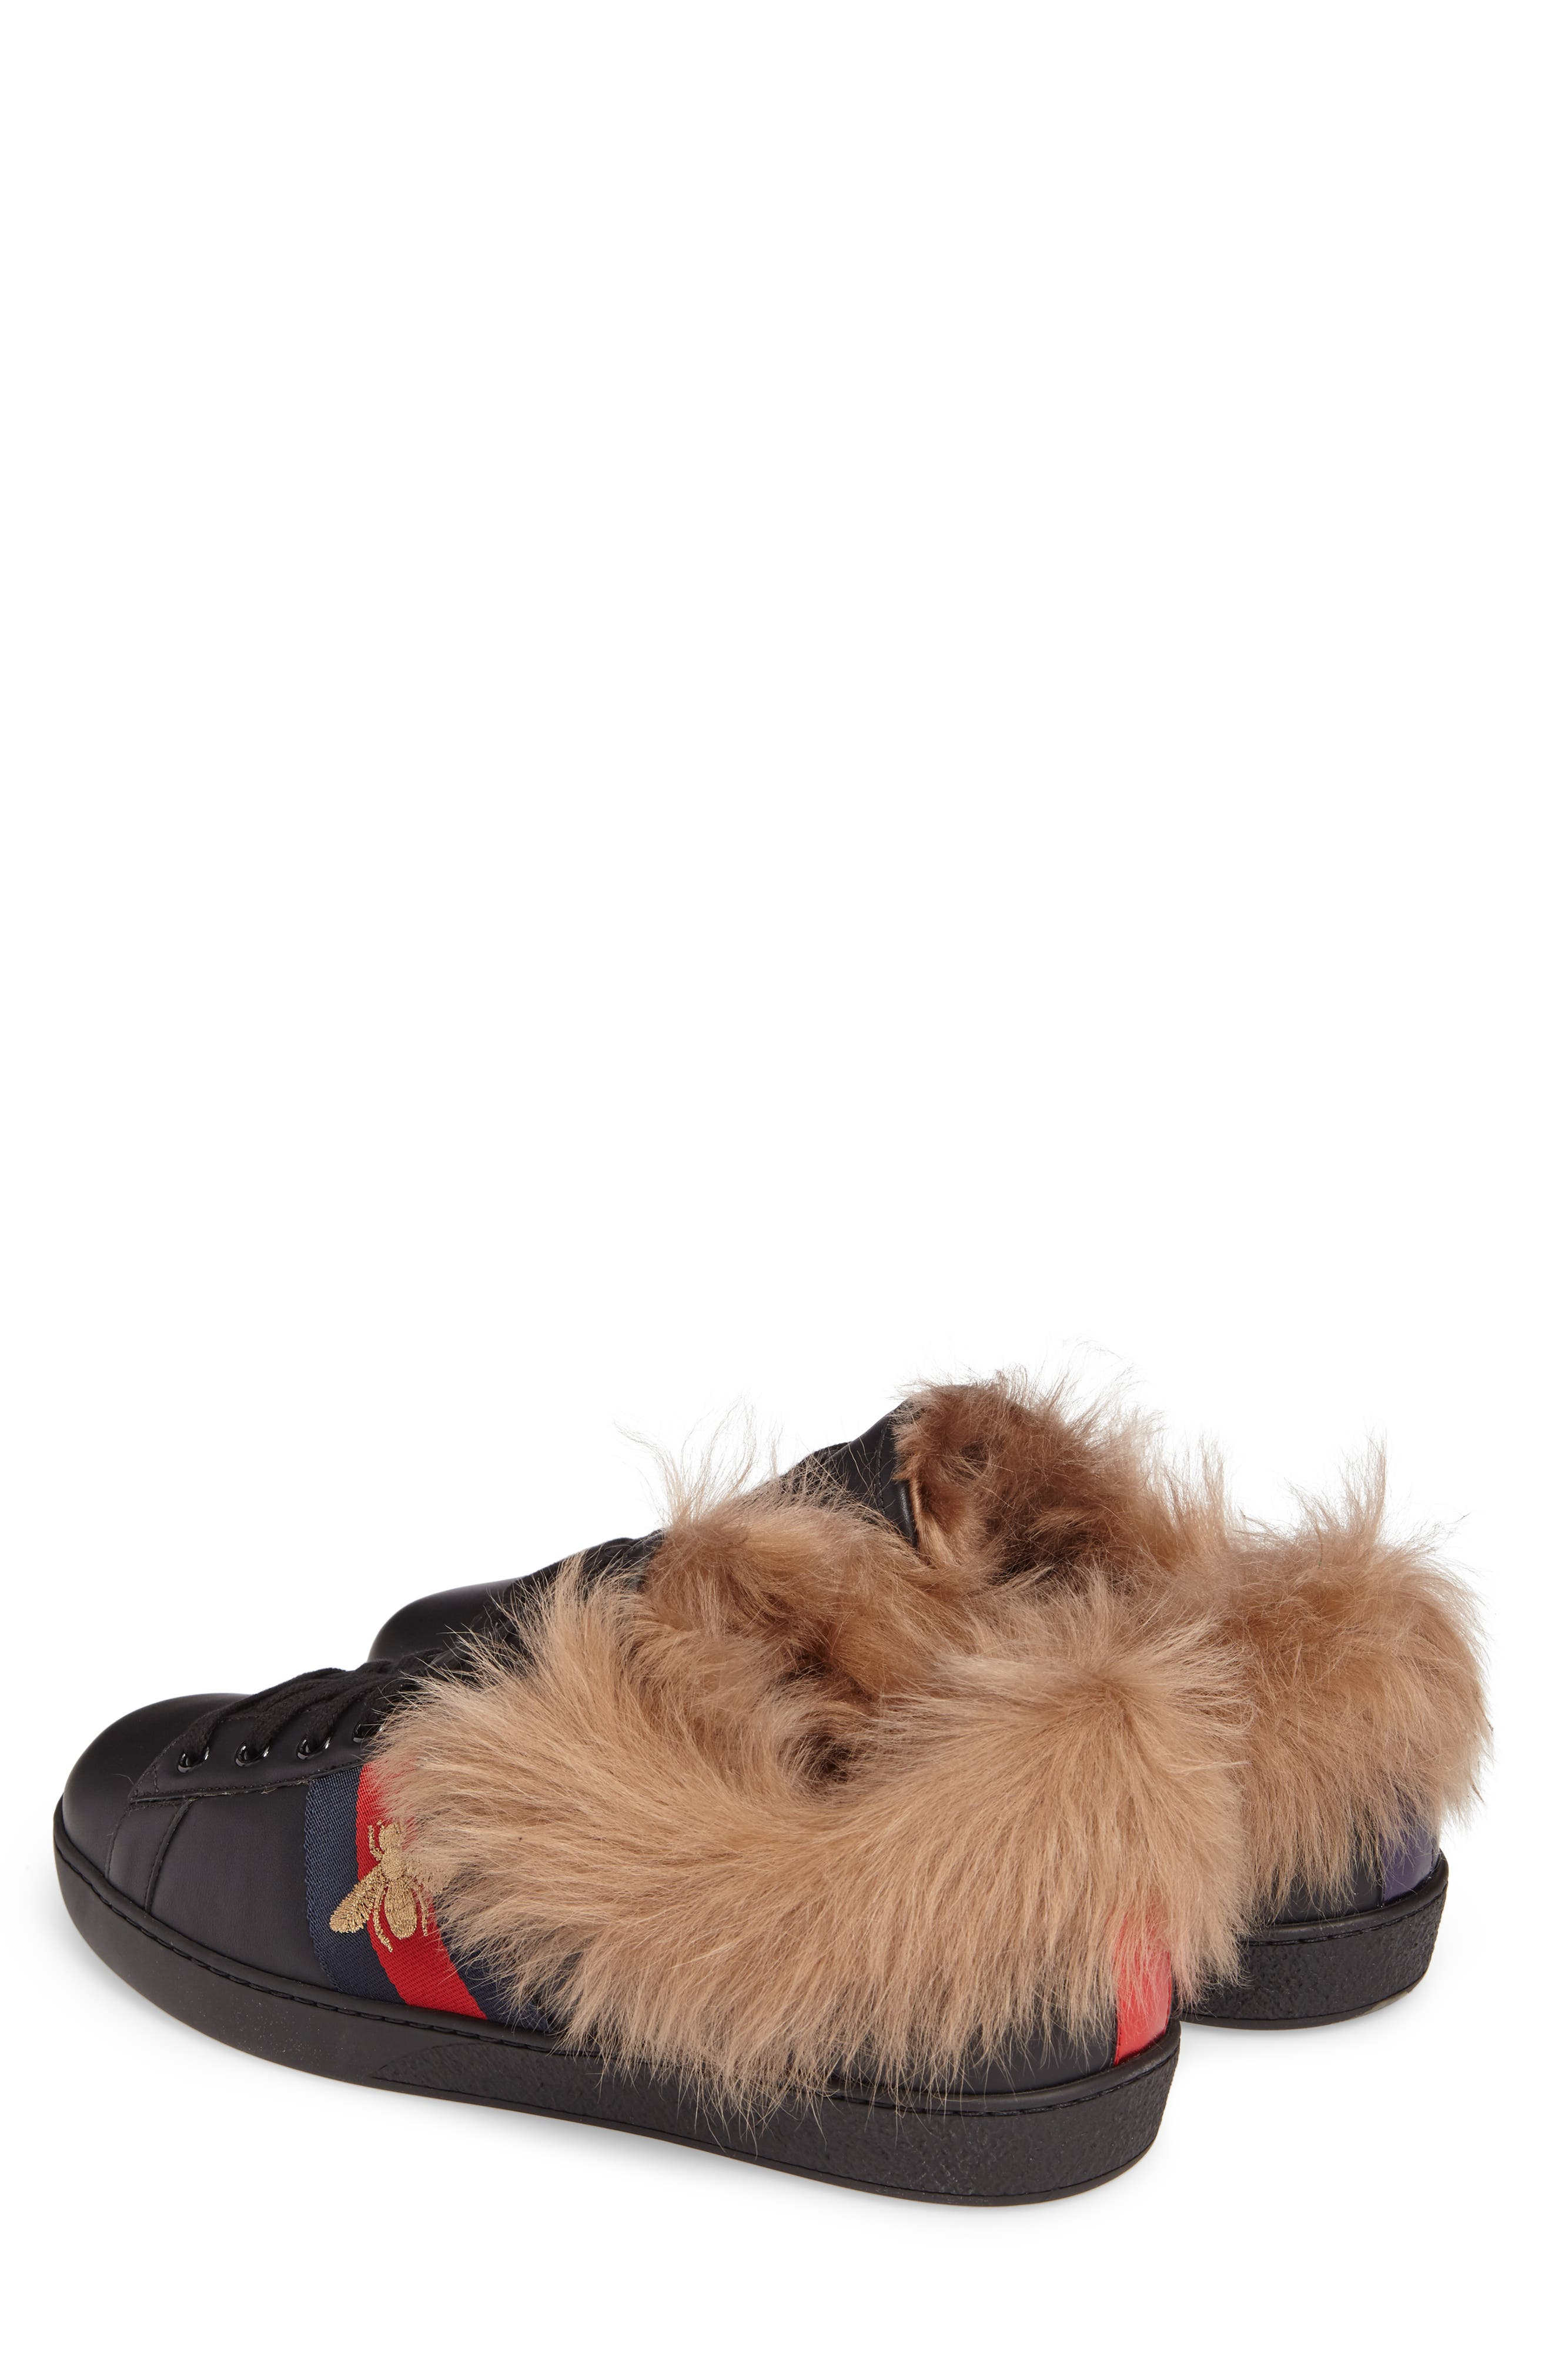 New Ace Genuine Shearling Trim Sneaker,                             Alternate thumbnail 2, color,                             007